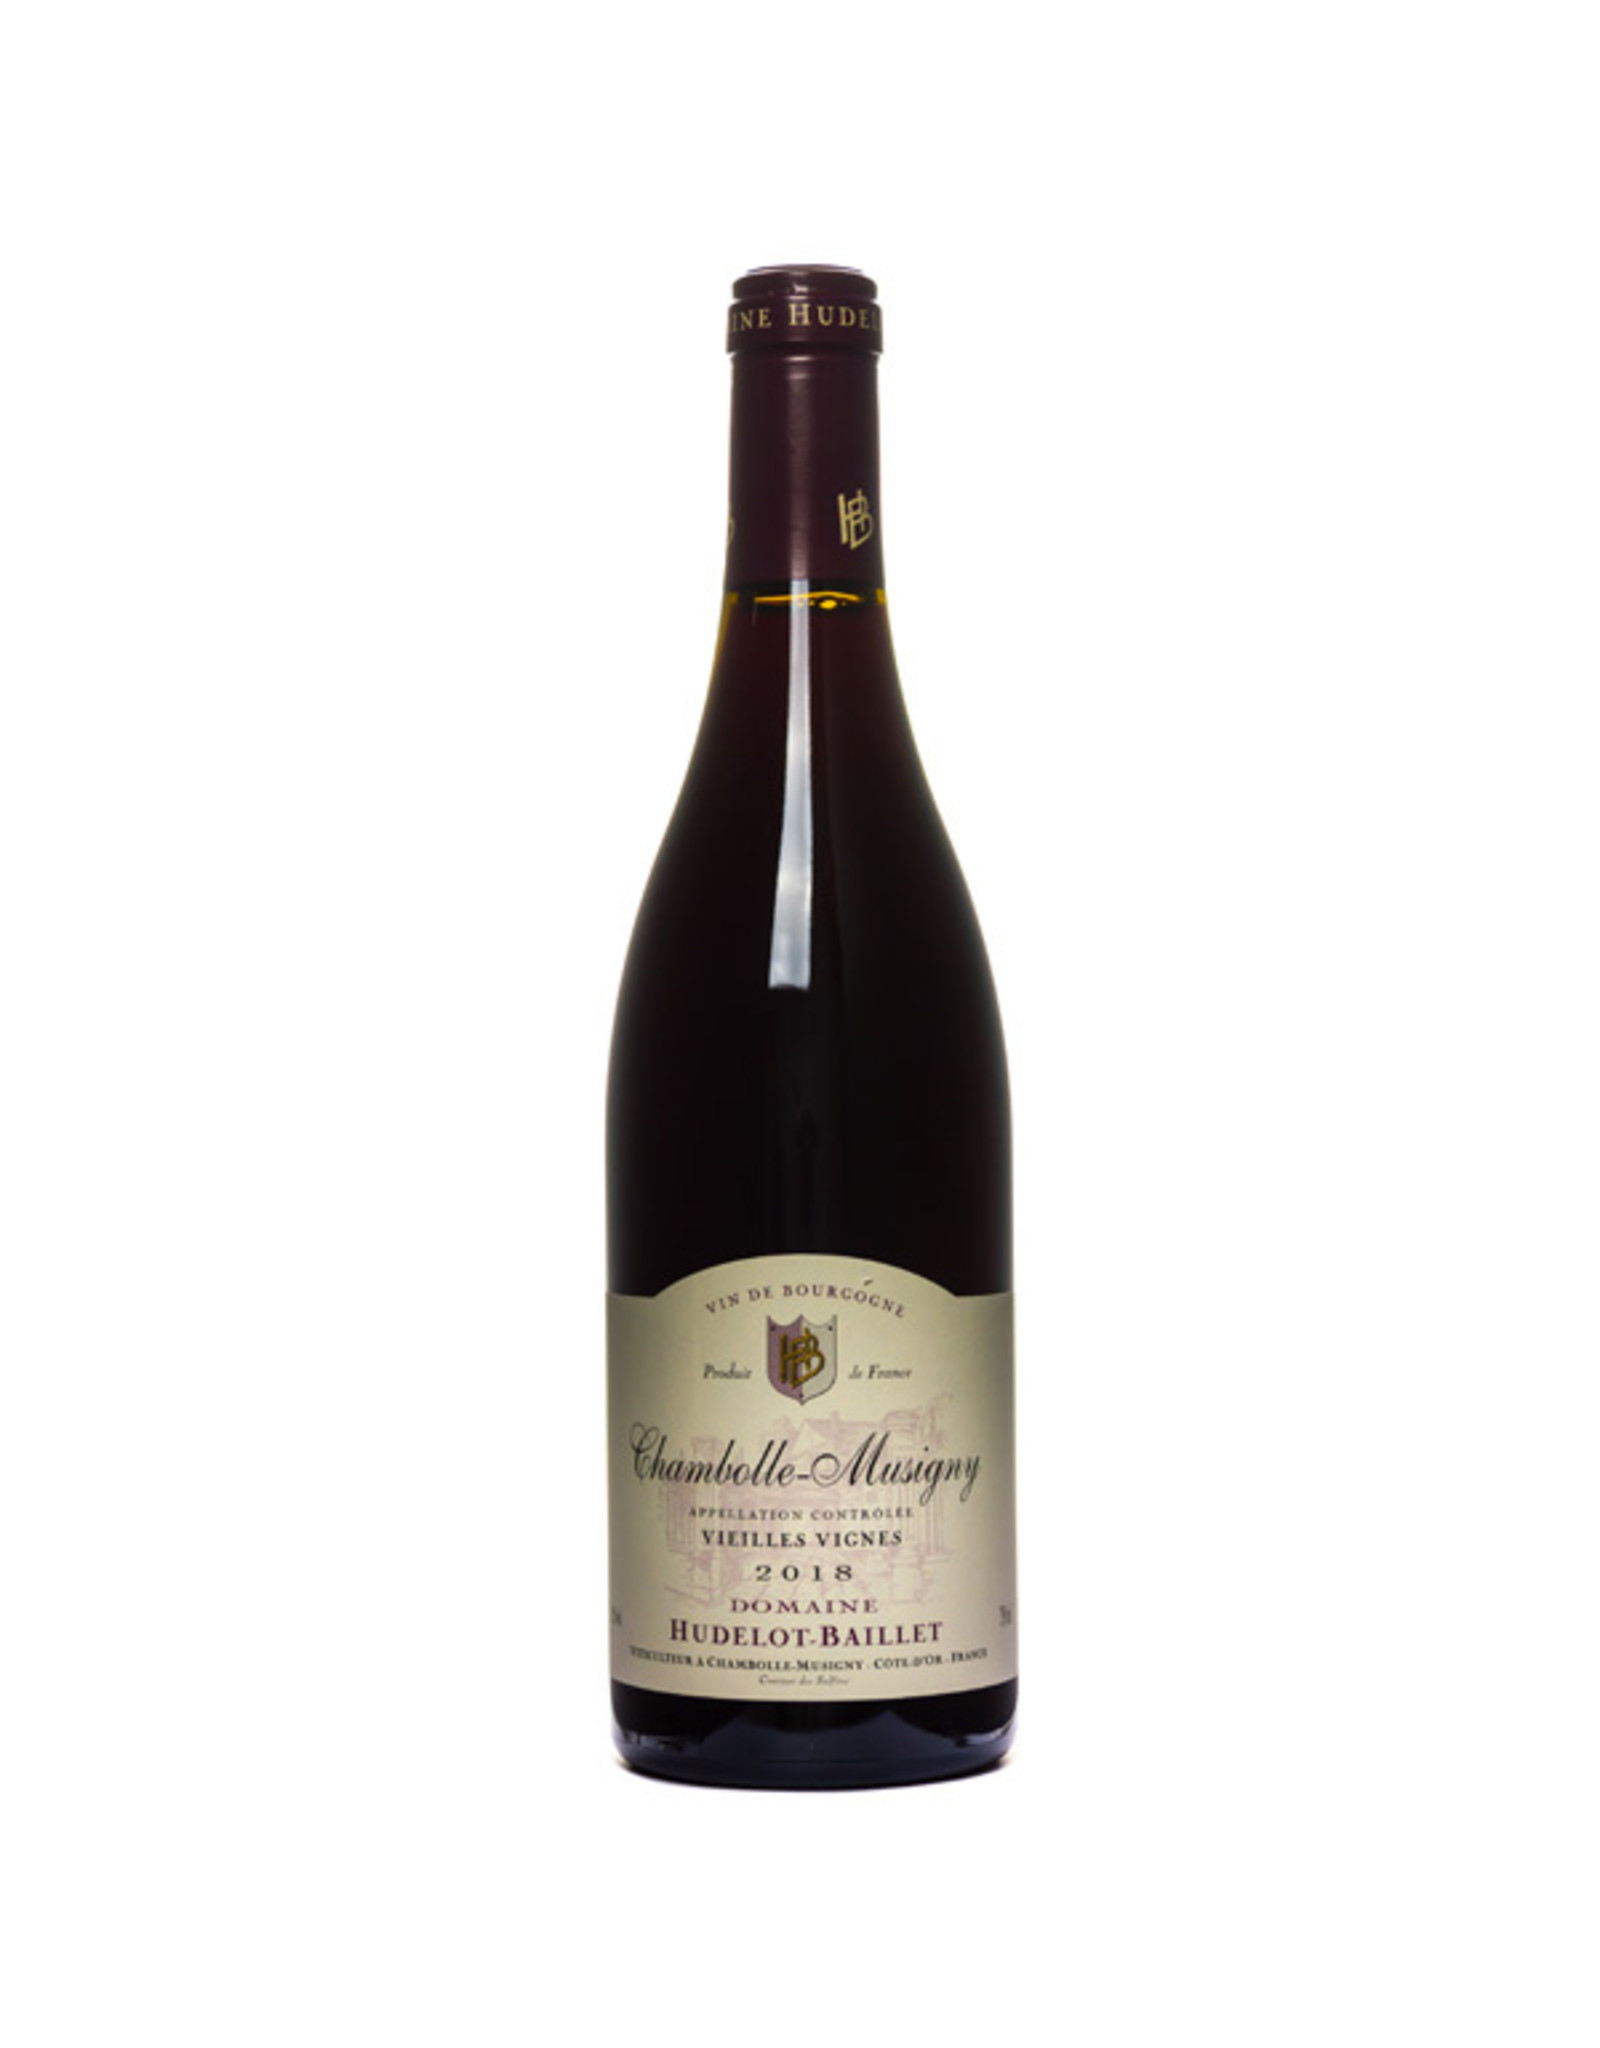 Hudelot-Baillet, Chambolle-Musigny Chambolle-Musigny Vieilles Vignes 2018, Hudelot-Baillet,